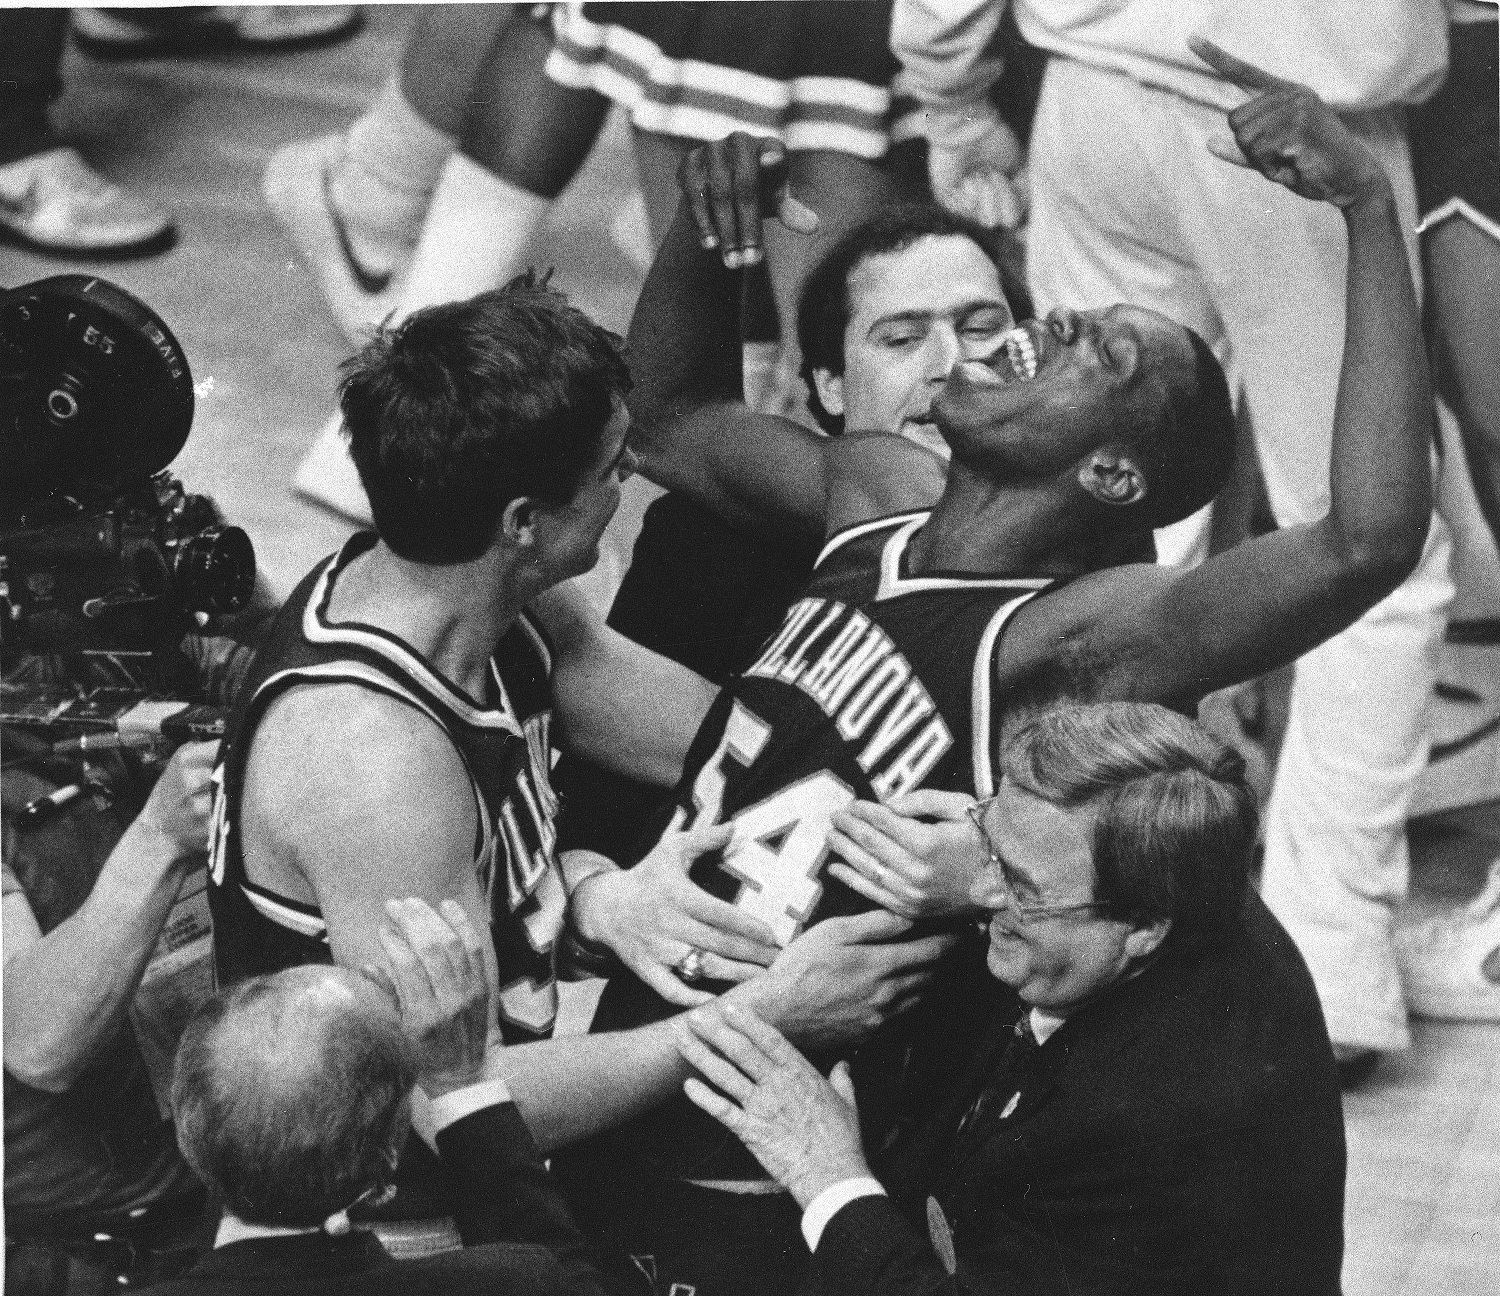 Villanova's Ed Pinckney (54) yells out as he is surrounded by teammates after the Wildcats defeated Georgetown and claimed the NCAA Championship in Lexington, Kentucky, April 1, 1985. (AP Photo/Gary Landers)